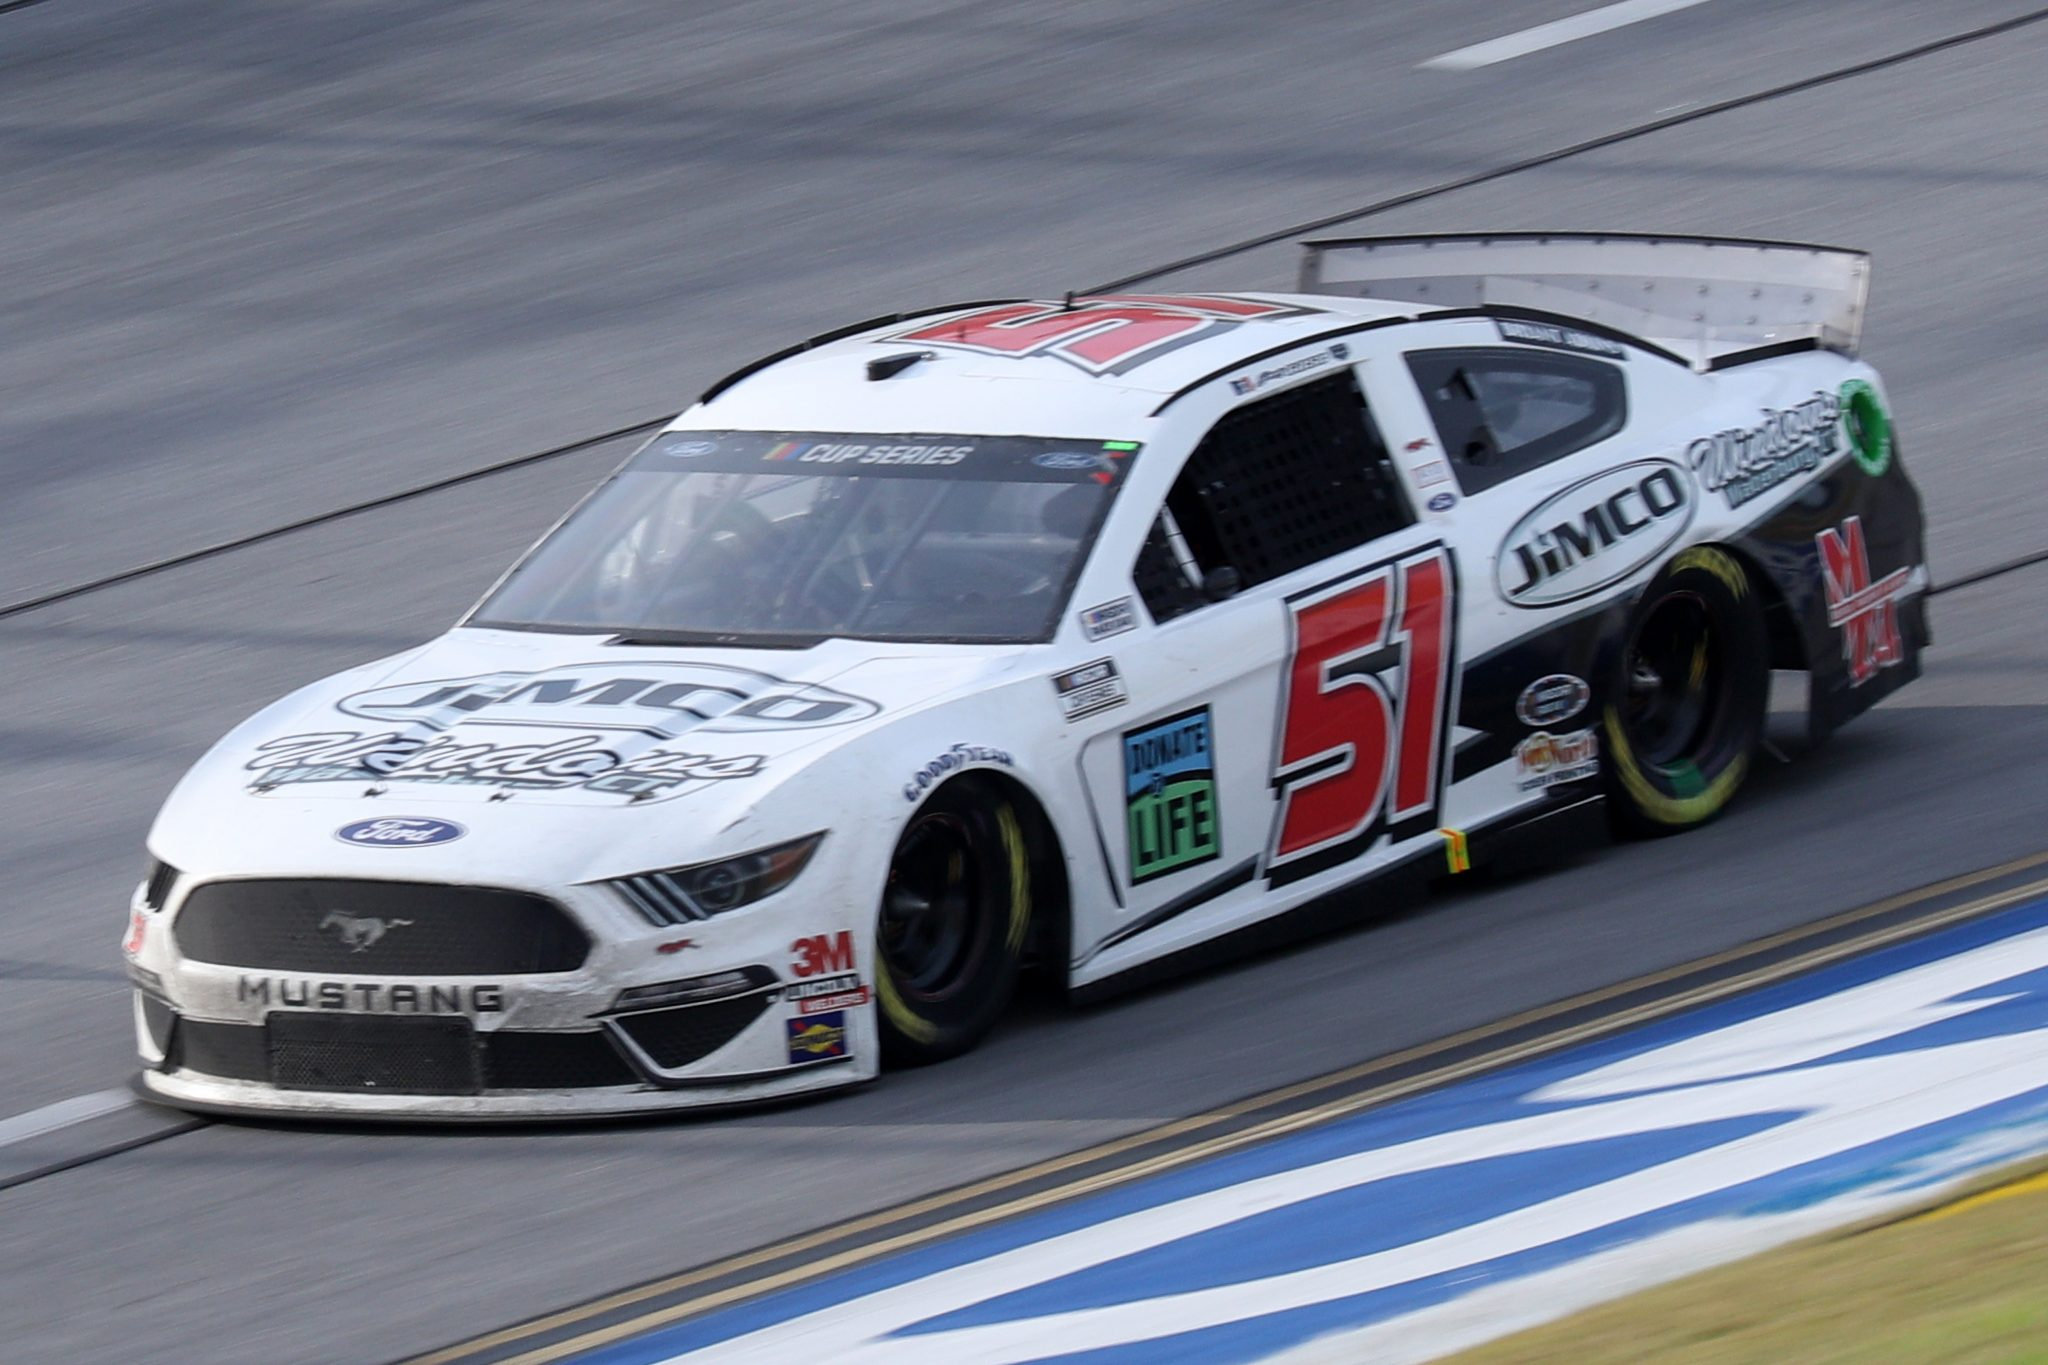 TALLADEGA, ALABAMA - OCTOBER 04: Joey Gase, driver of the #51 Ford, races during the NASCAR Cup Series YellaWood 500 at Talladega Superspeedway on October 04, 2020 in Talladega, Alabama. (Photo by Chris Graythen/Getty Images) | Getty Images